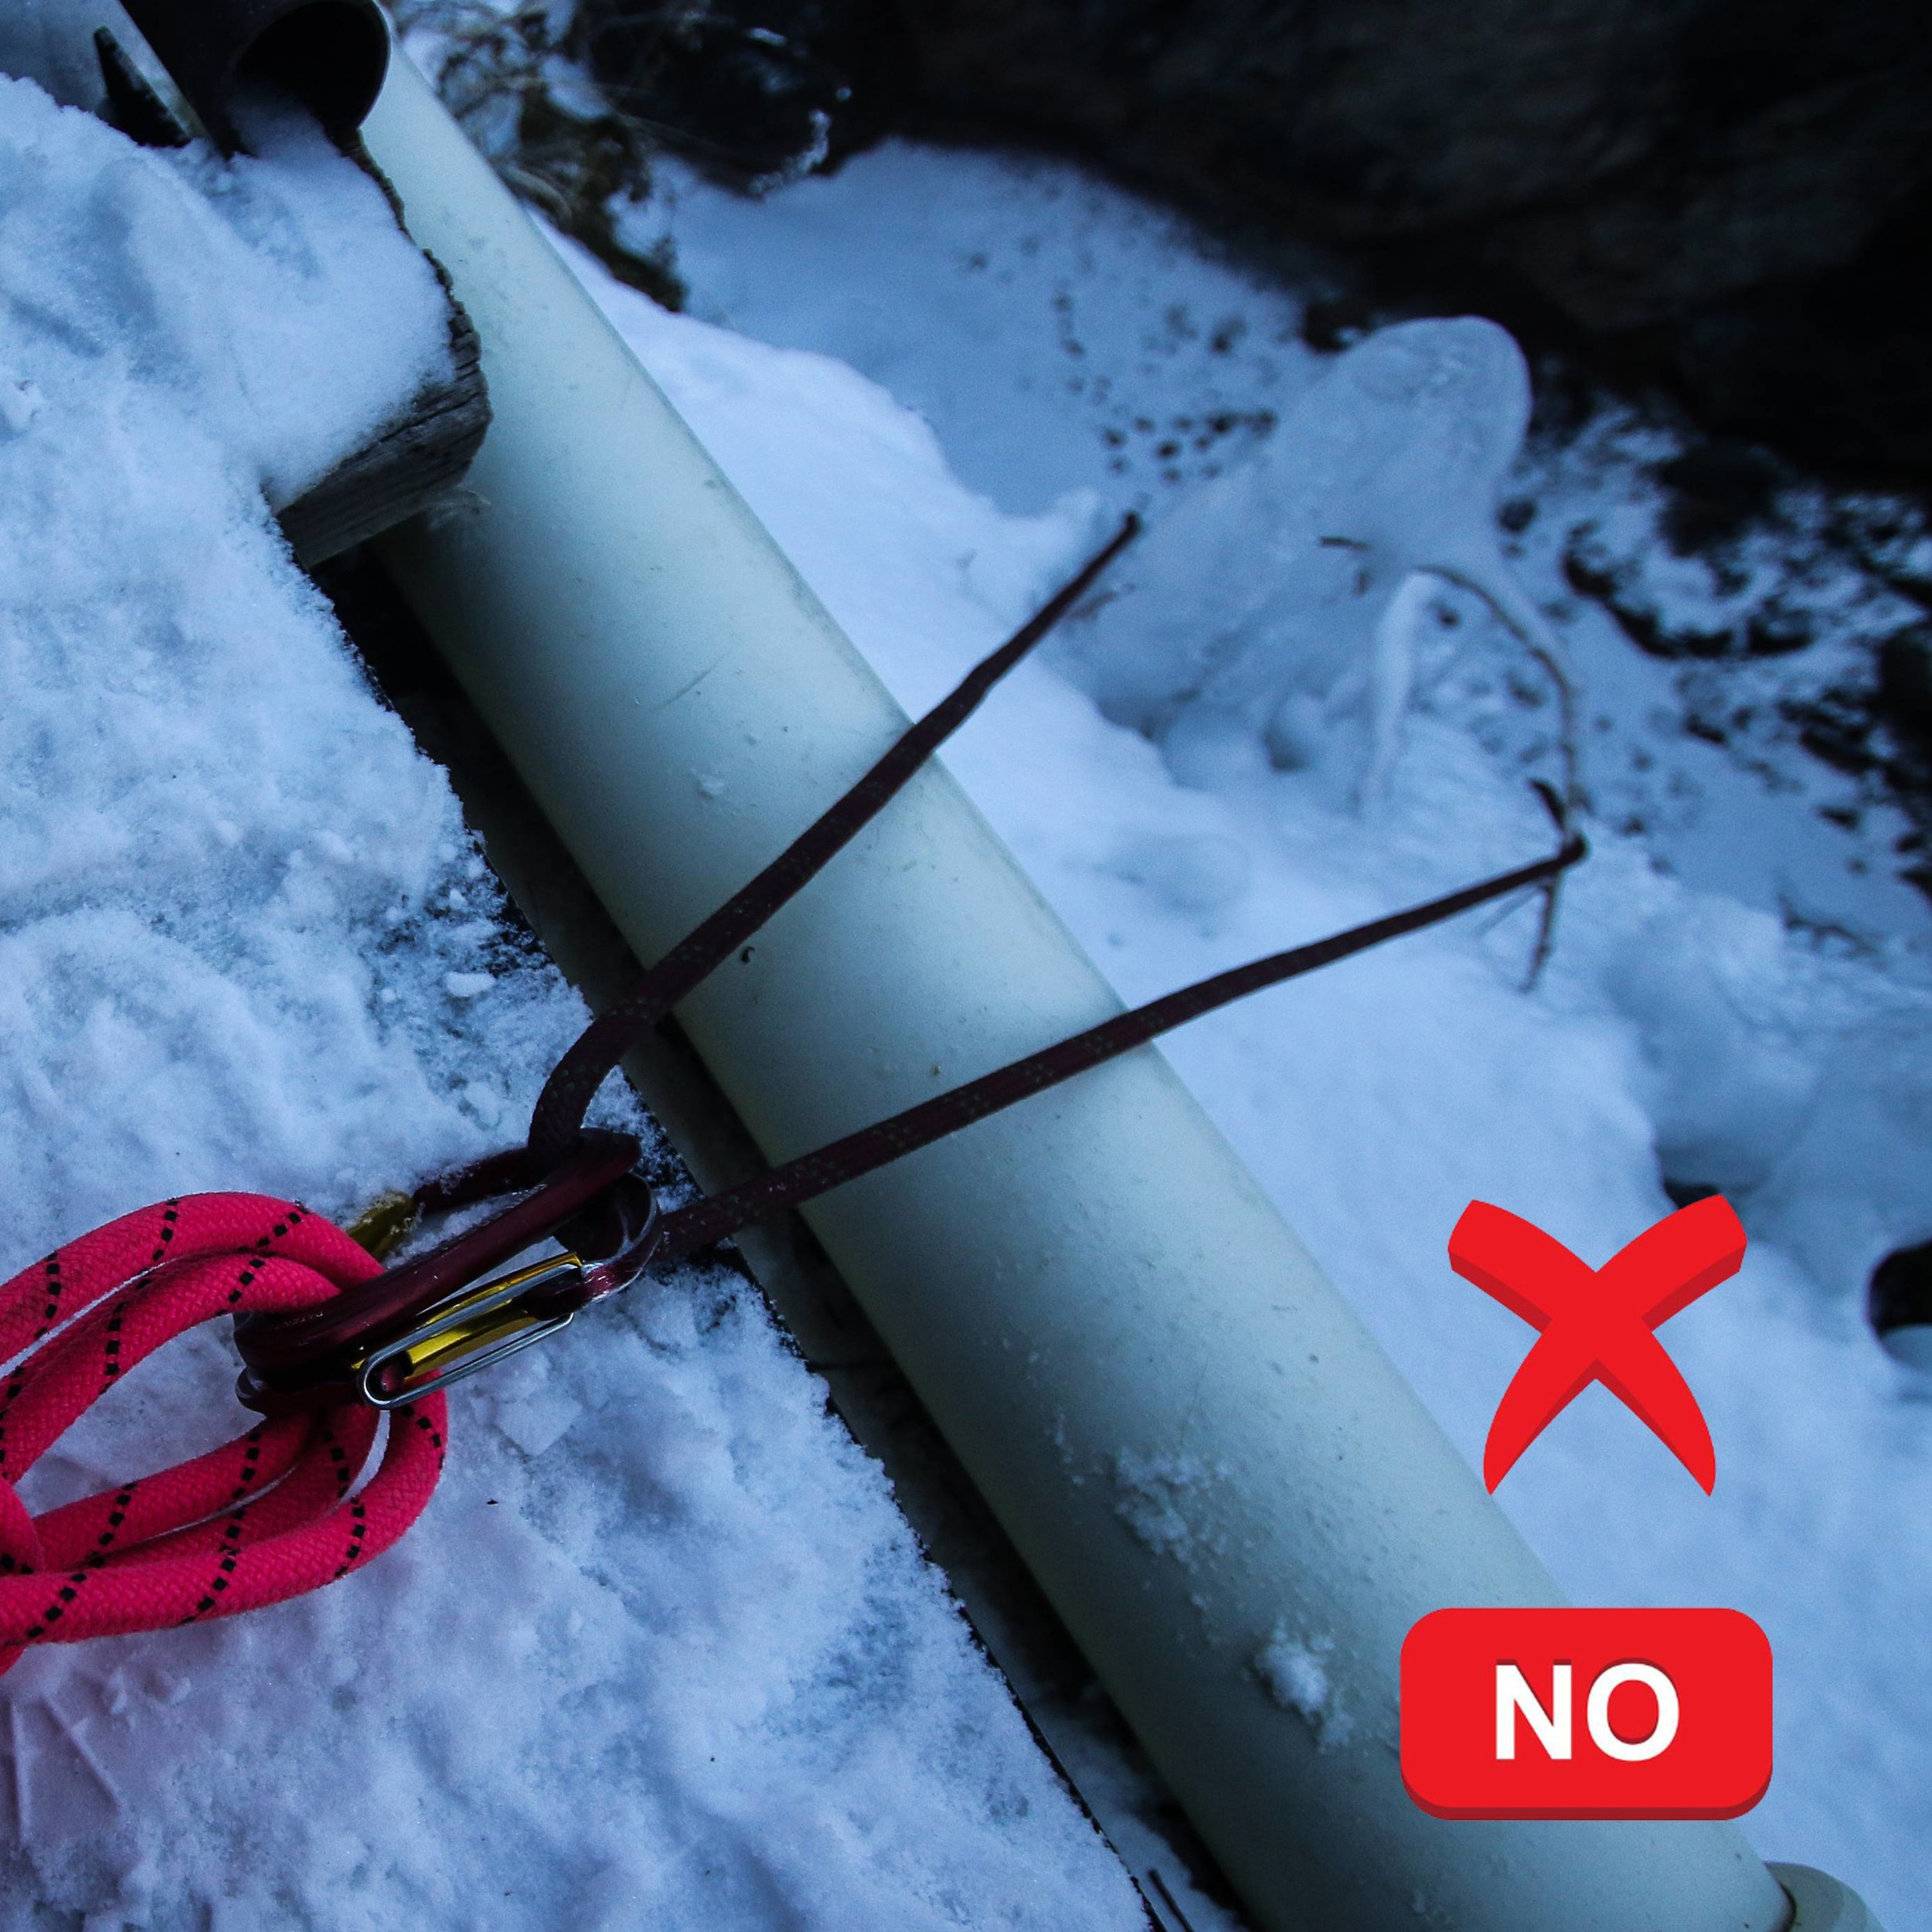 Be mindful of water pipes! Pressure and moving rope can damage our precious ice making plumbing! -